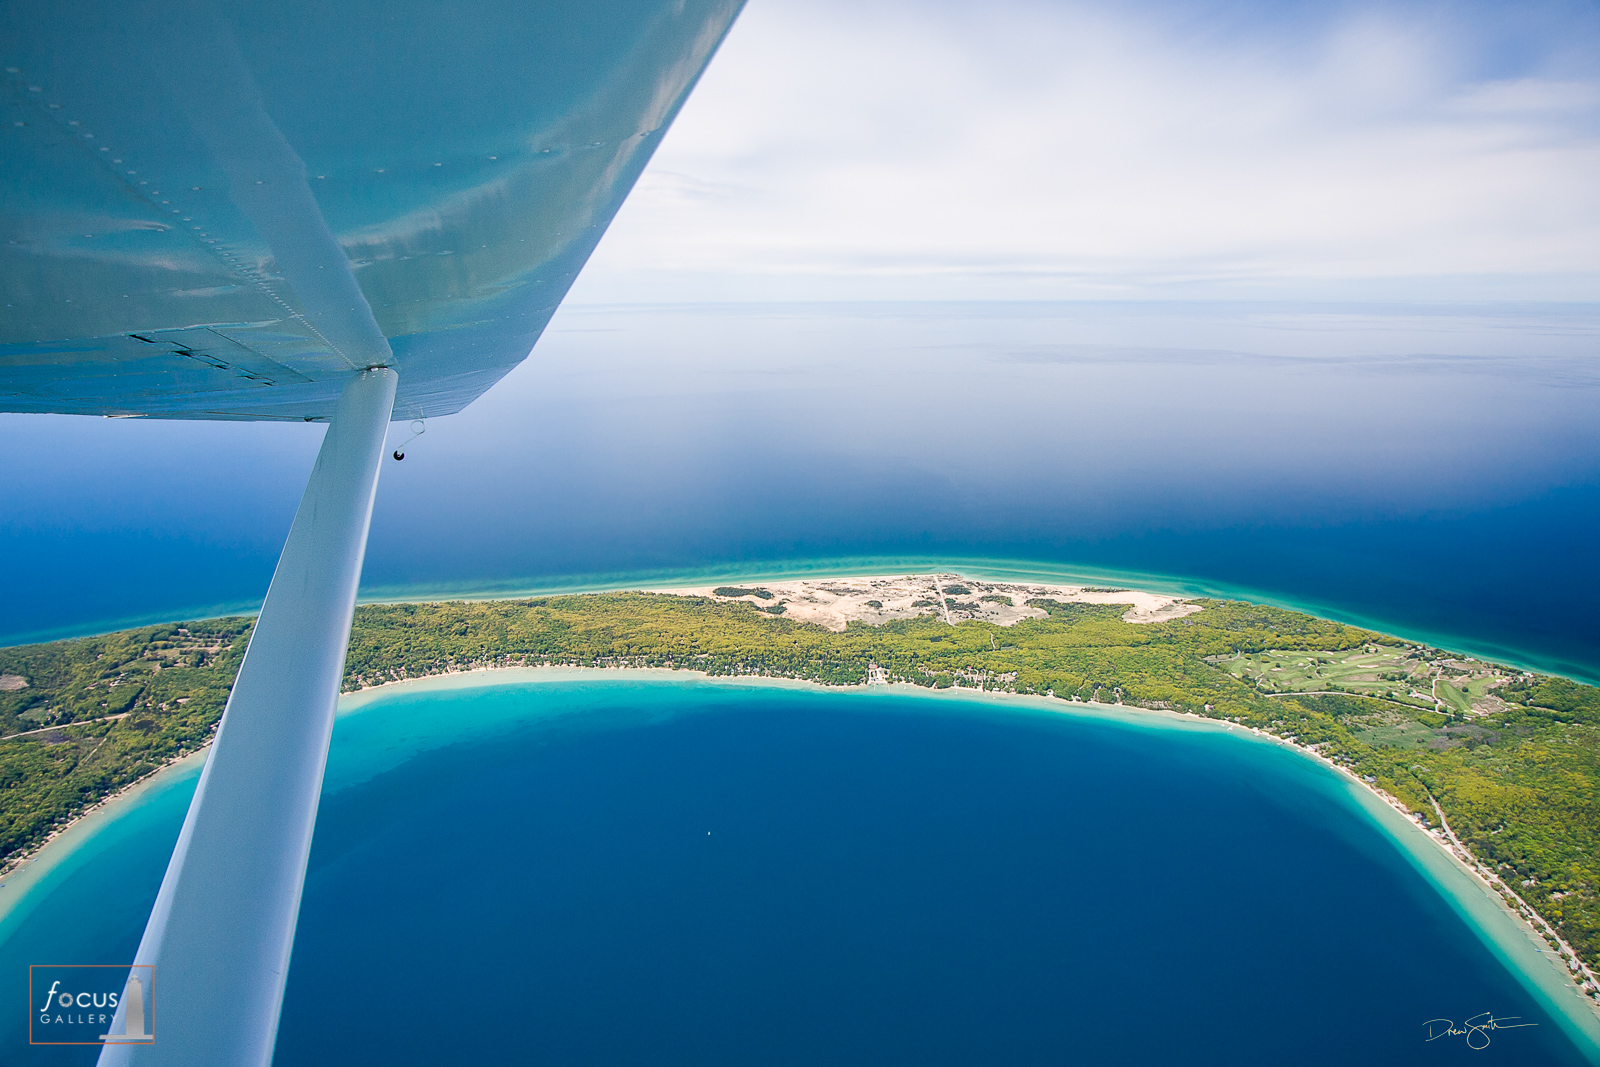 Aerial view from a glider of Crystal Lake, Lake Michigan and Point Betsie in Benzie County, Michigan.